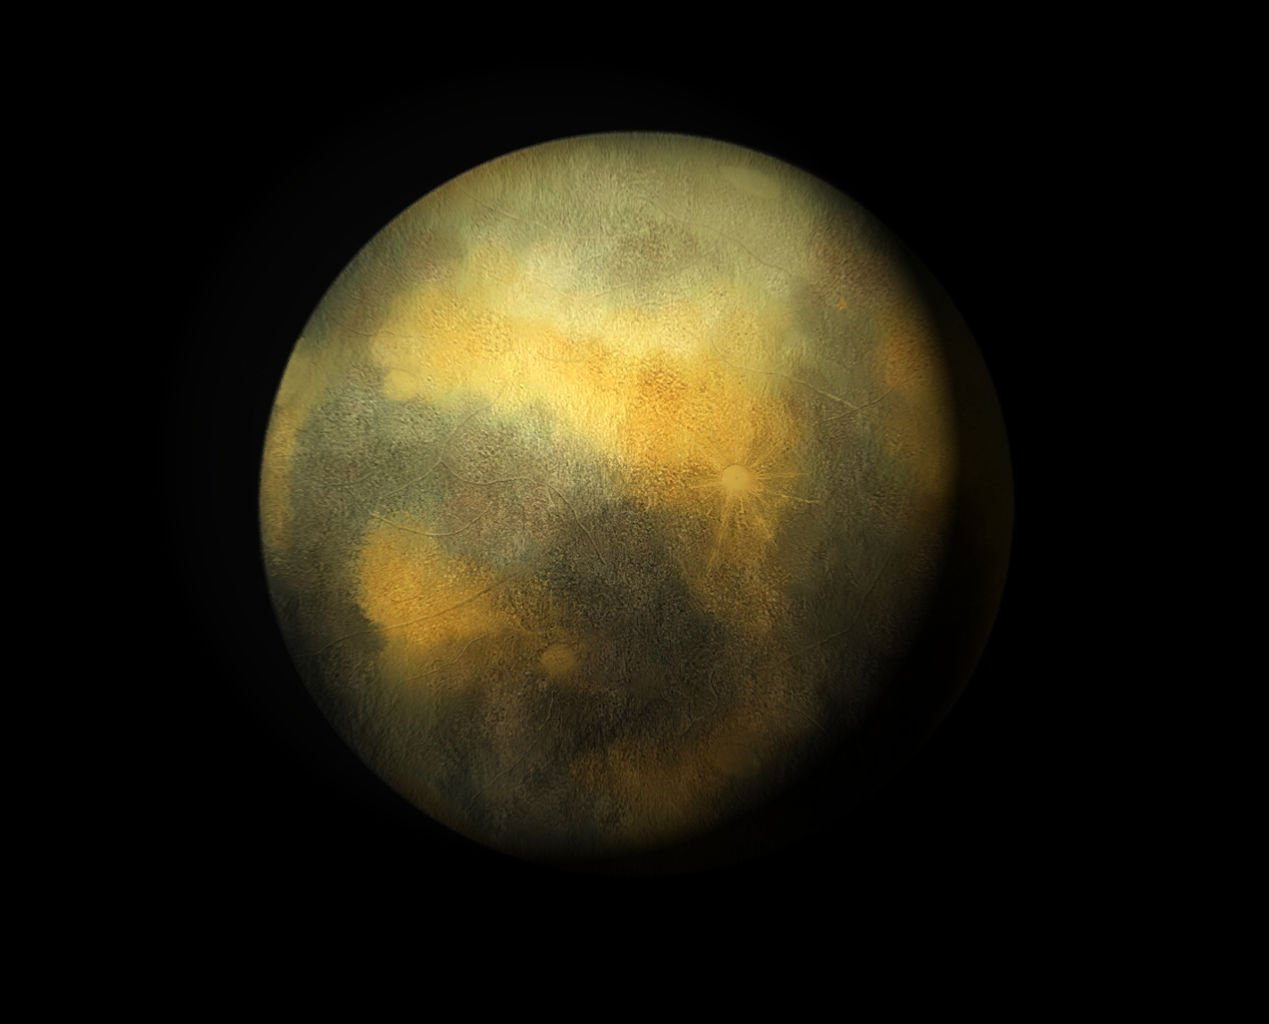 This is an artist's conception of Pluto.  NASA's New Horizons spacecraft will soon provide actual photographs of Pluto, taken from the closest vantage point of any NASA camera.